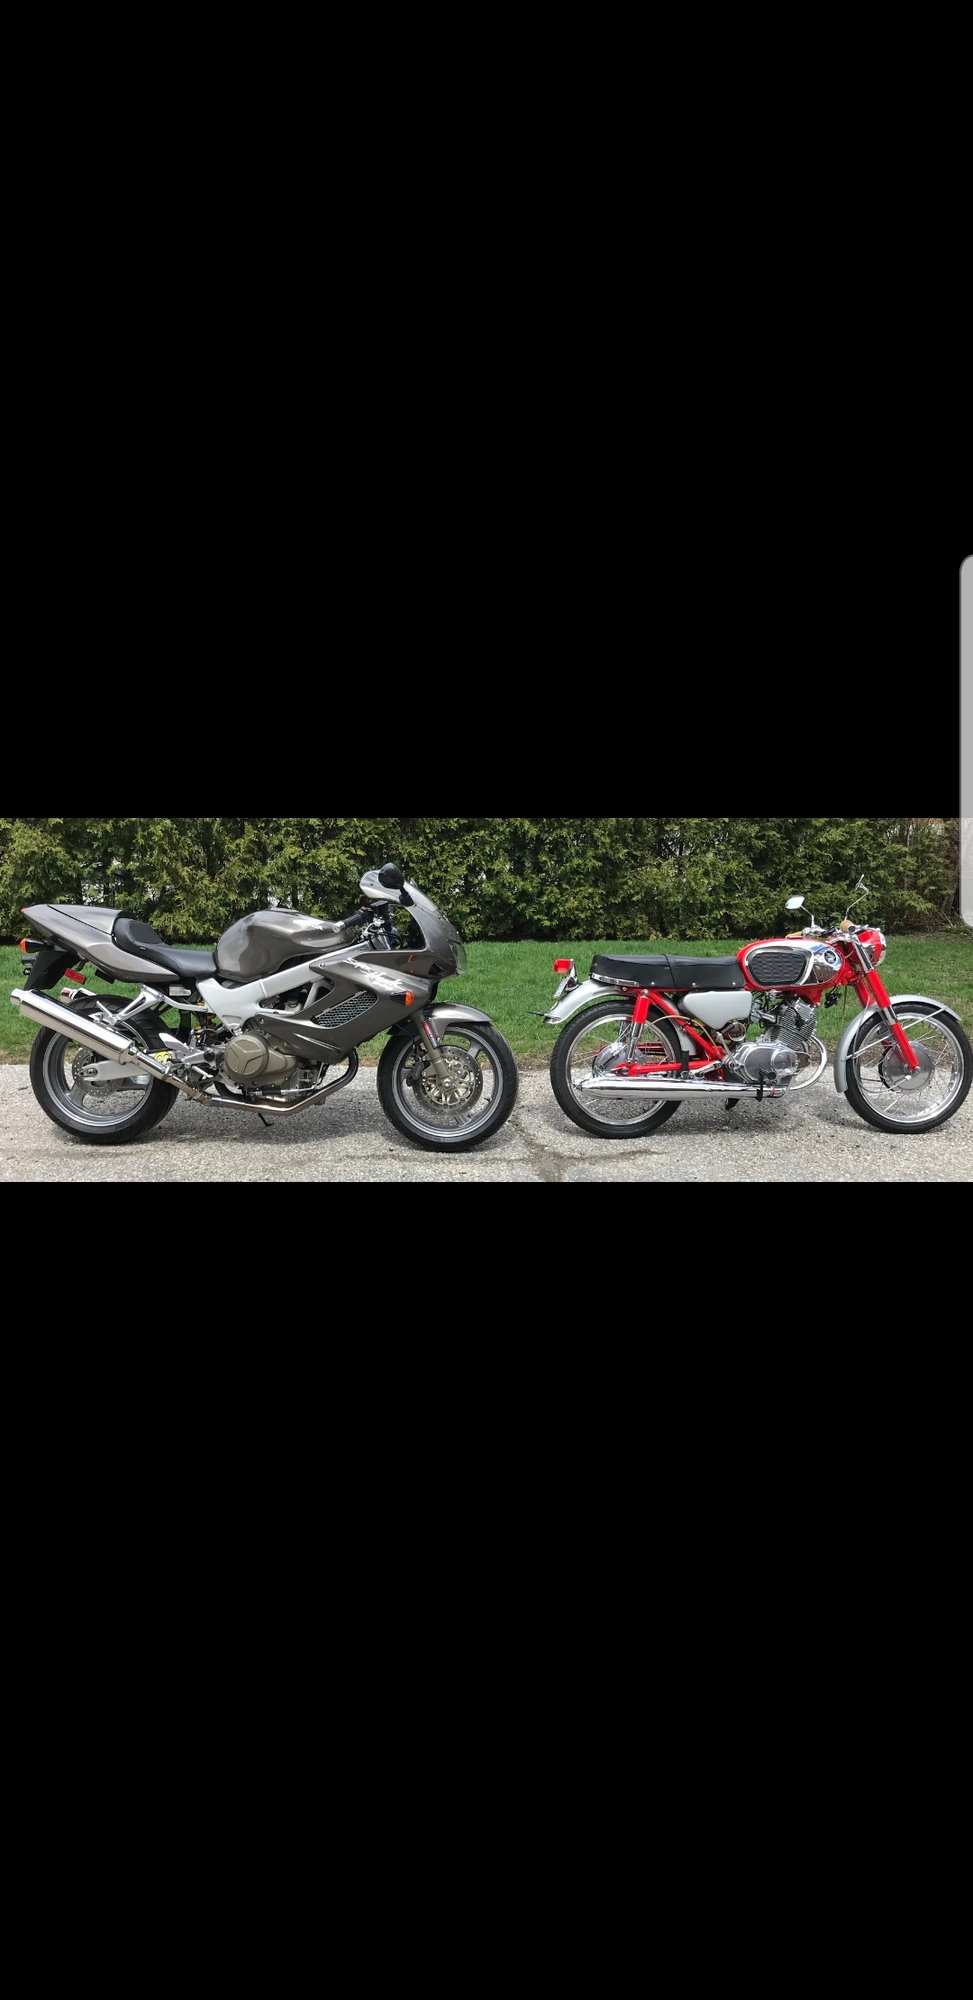 Vtr1000 2005 How Much Is It Worth 4600km Only Superhawk Forum